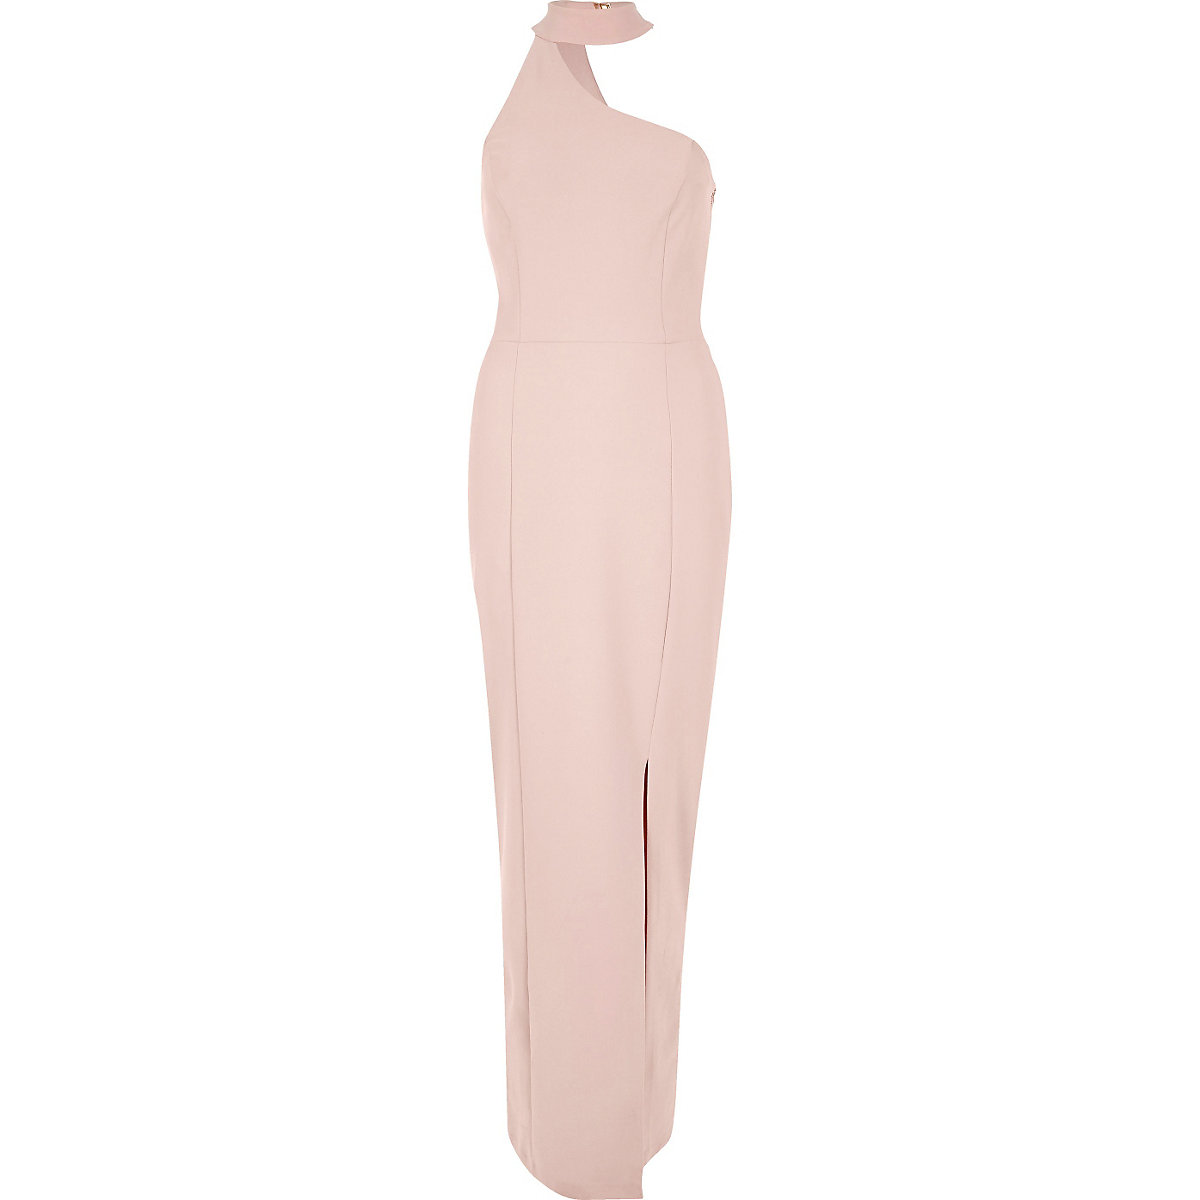 Nude Pink One Shoulder Choker Maxi Dress Maxi Dresses Dresses